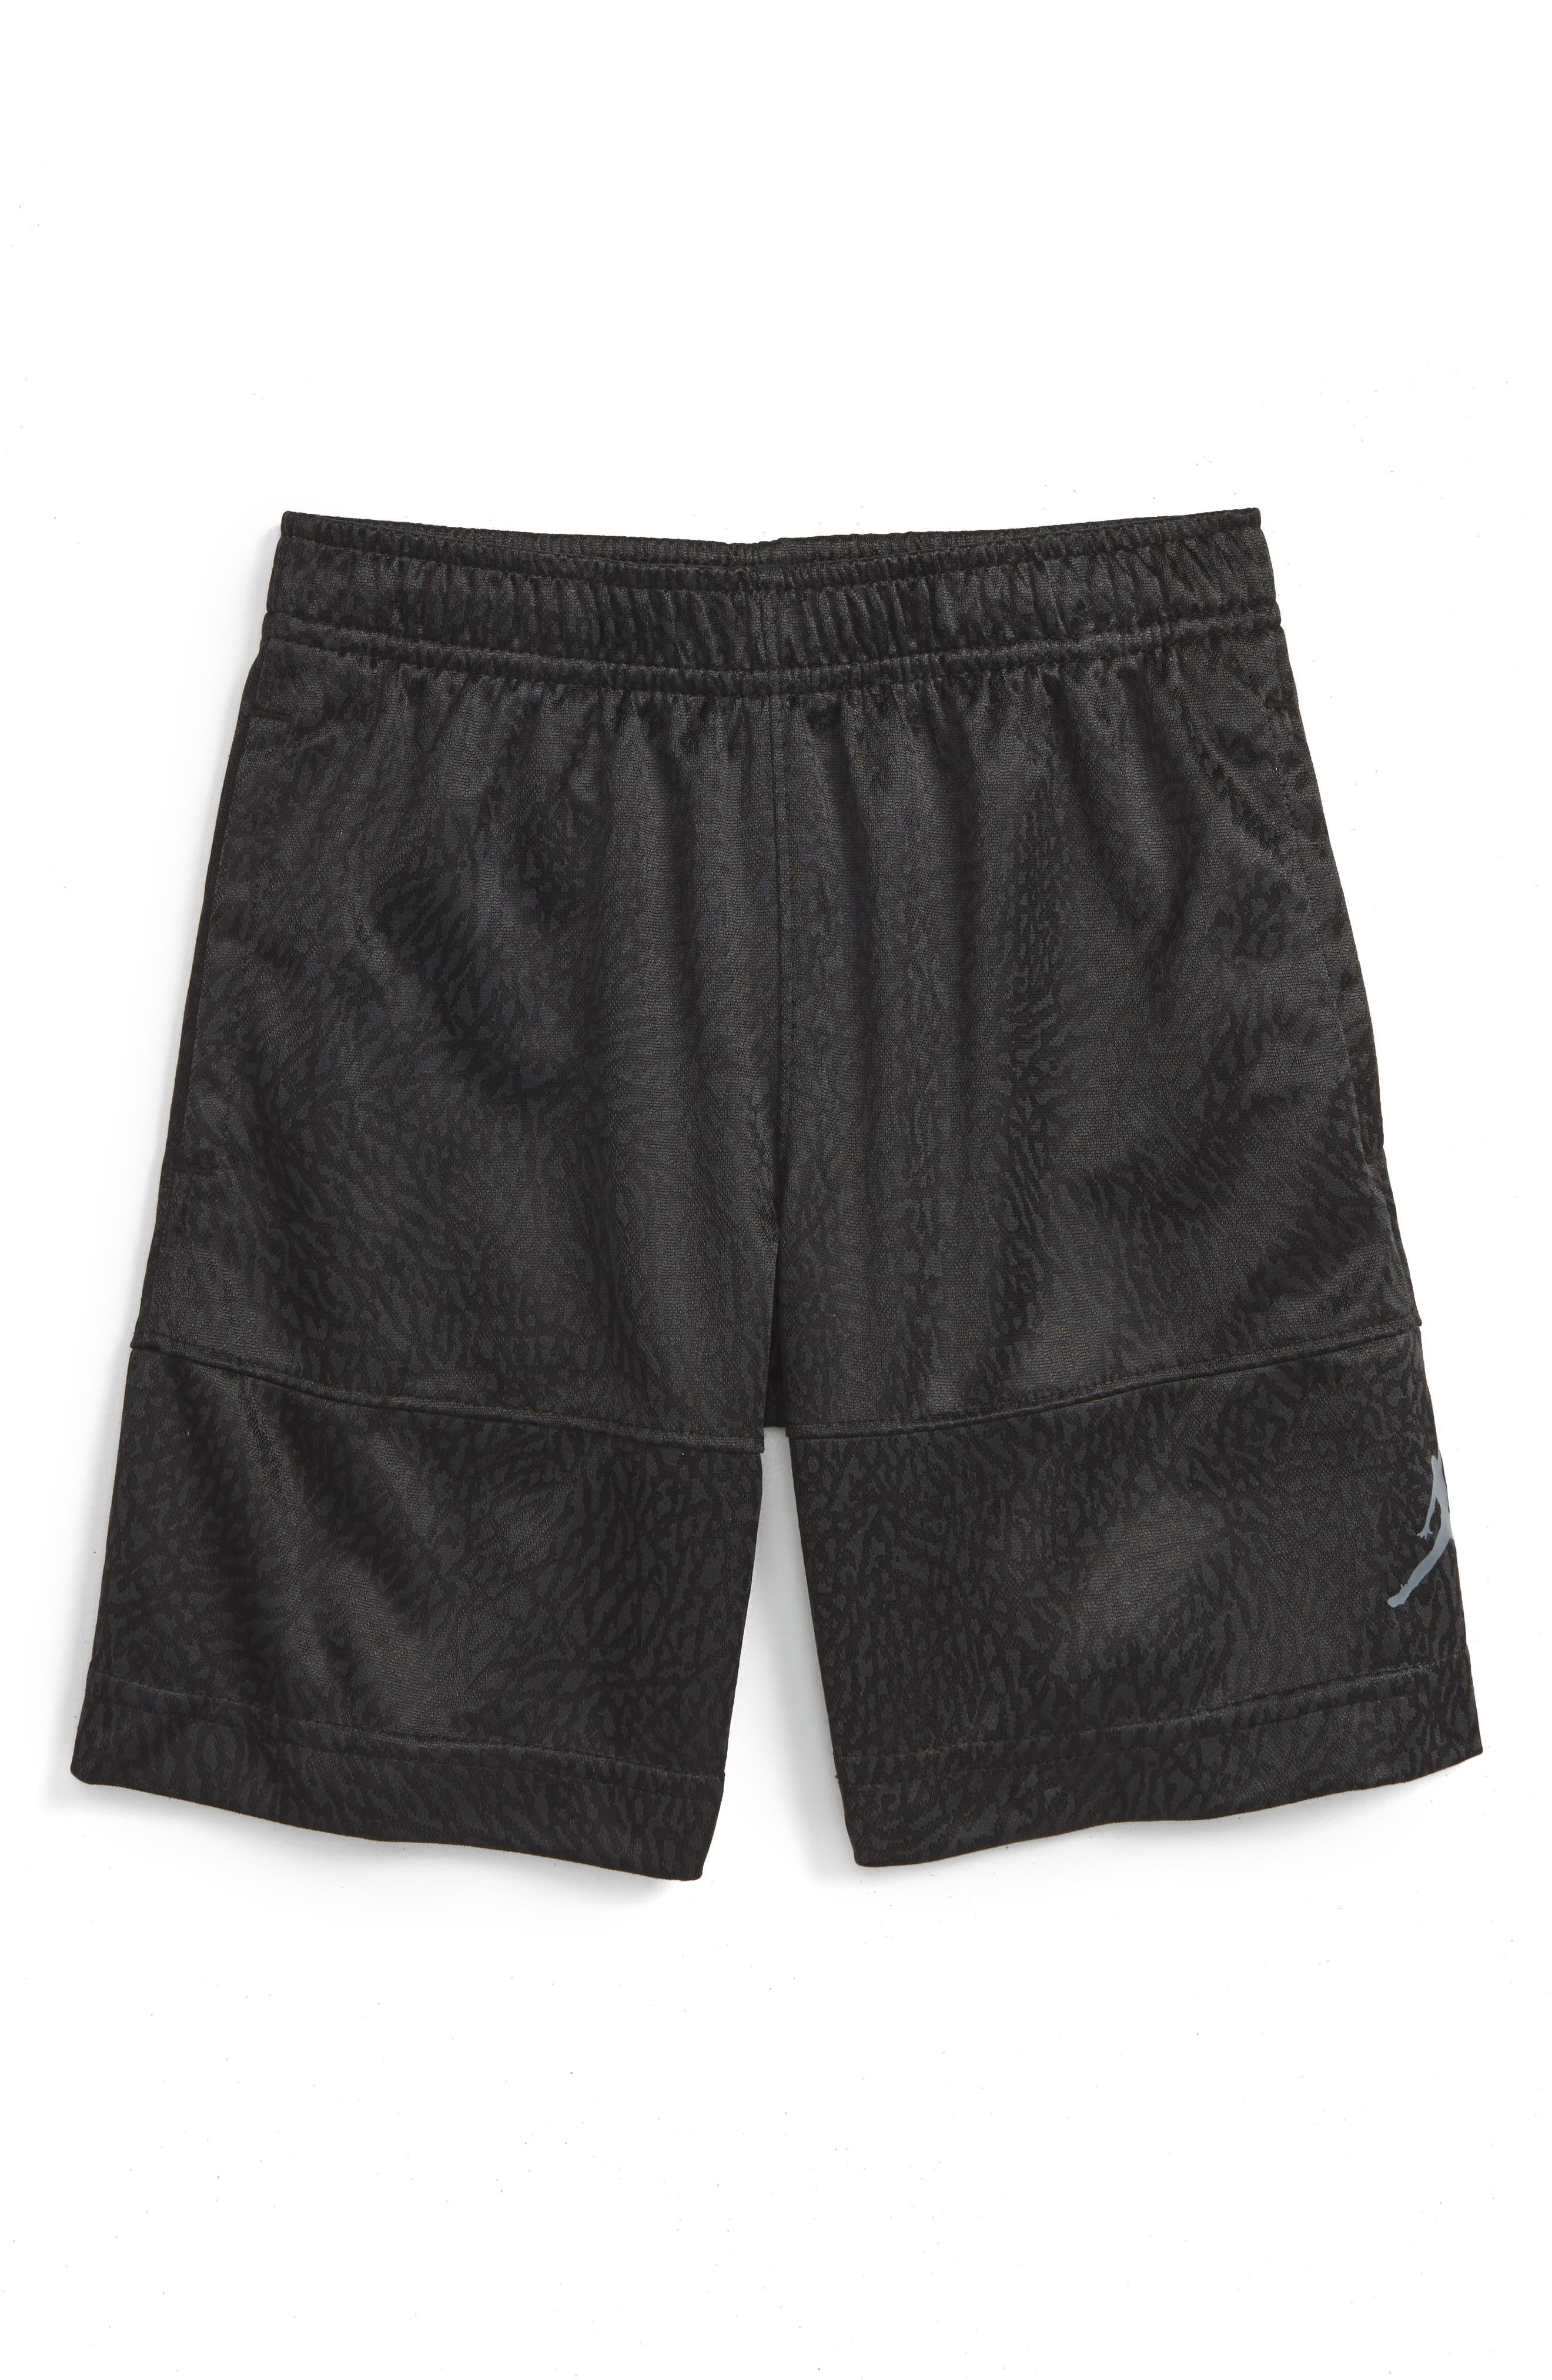 Jordan Blockout Dri-FIT Shorts (Toddler Boys & Little Boys)